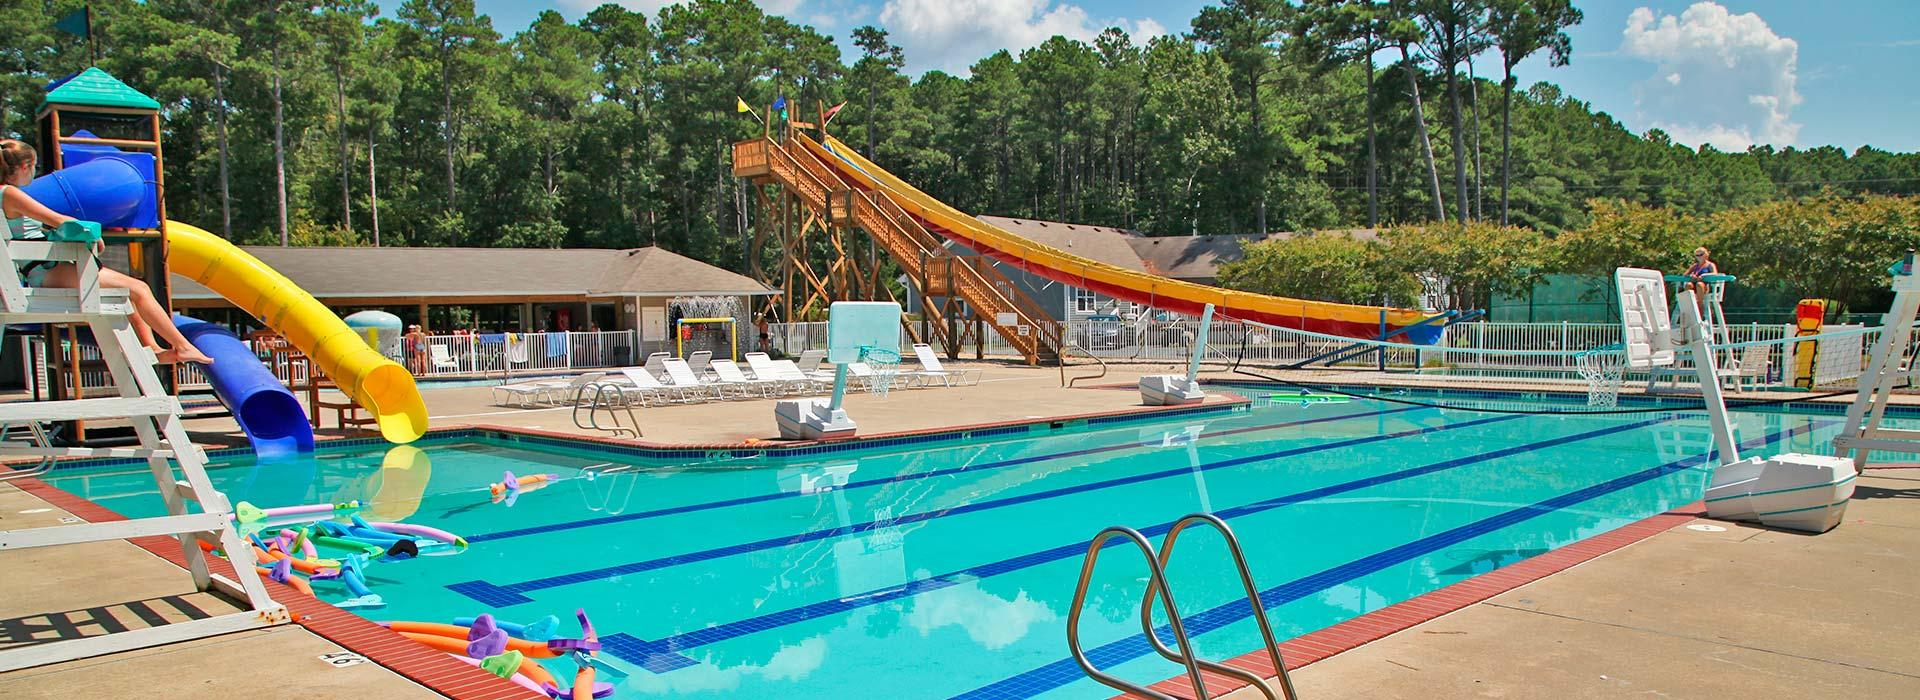 camp silverbeach pool